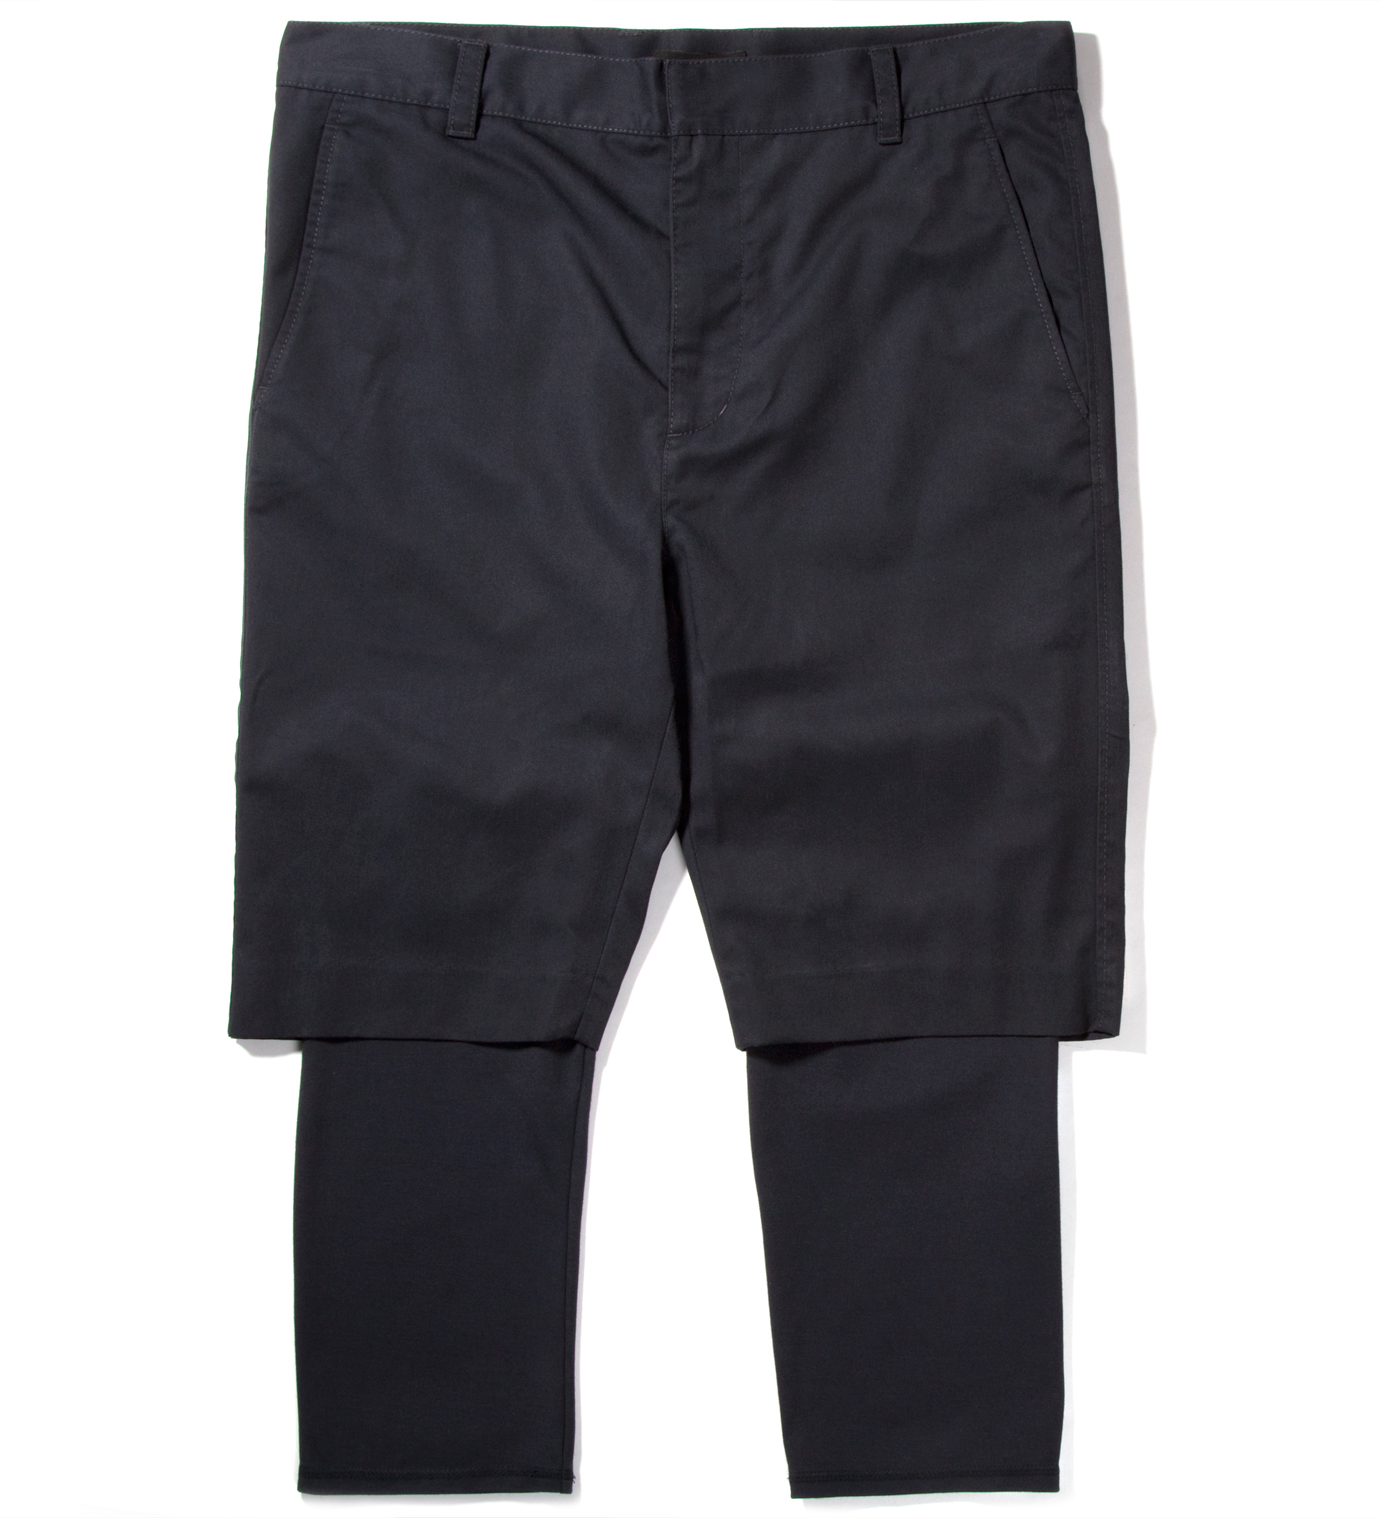 3.1 Phillip Lim Midnight Slim Fit Short with Knit Cuff